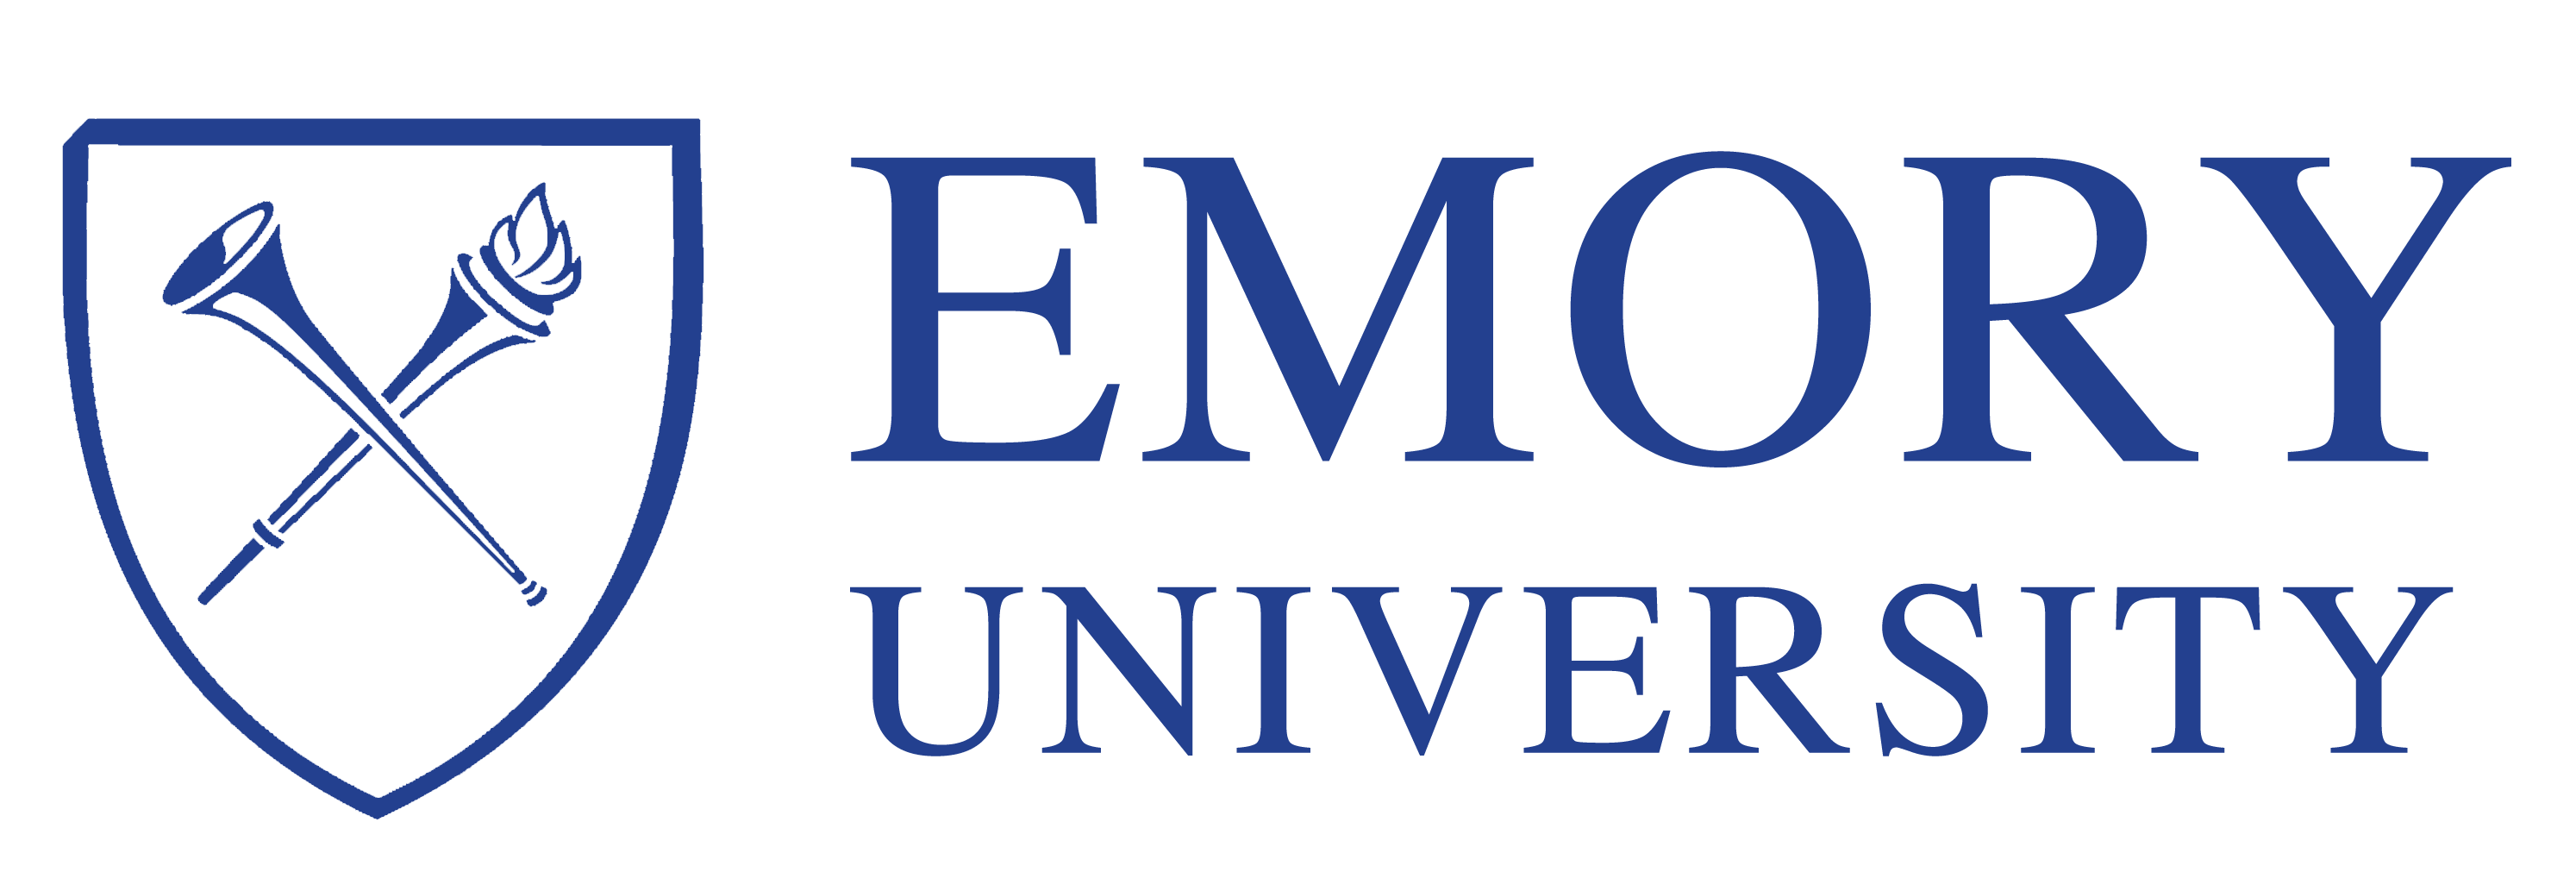 emory university matriculation